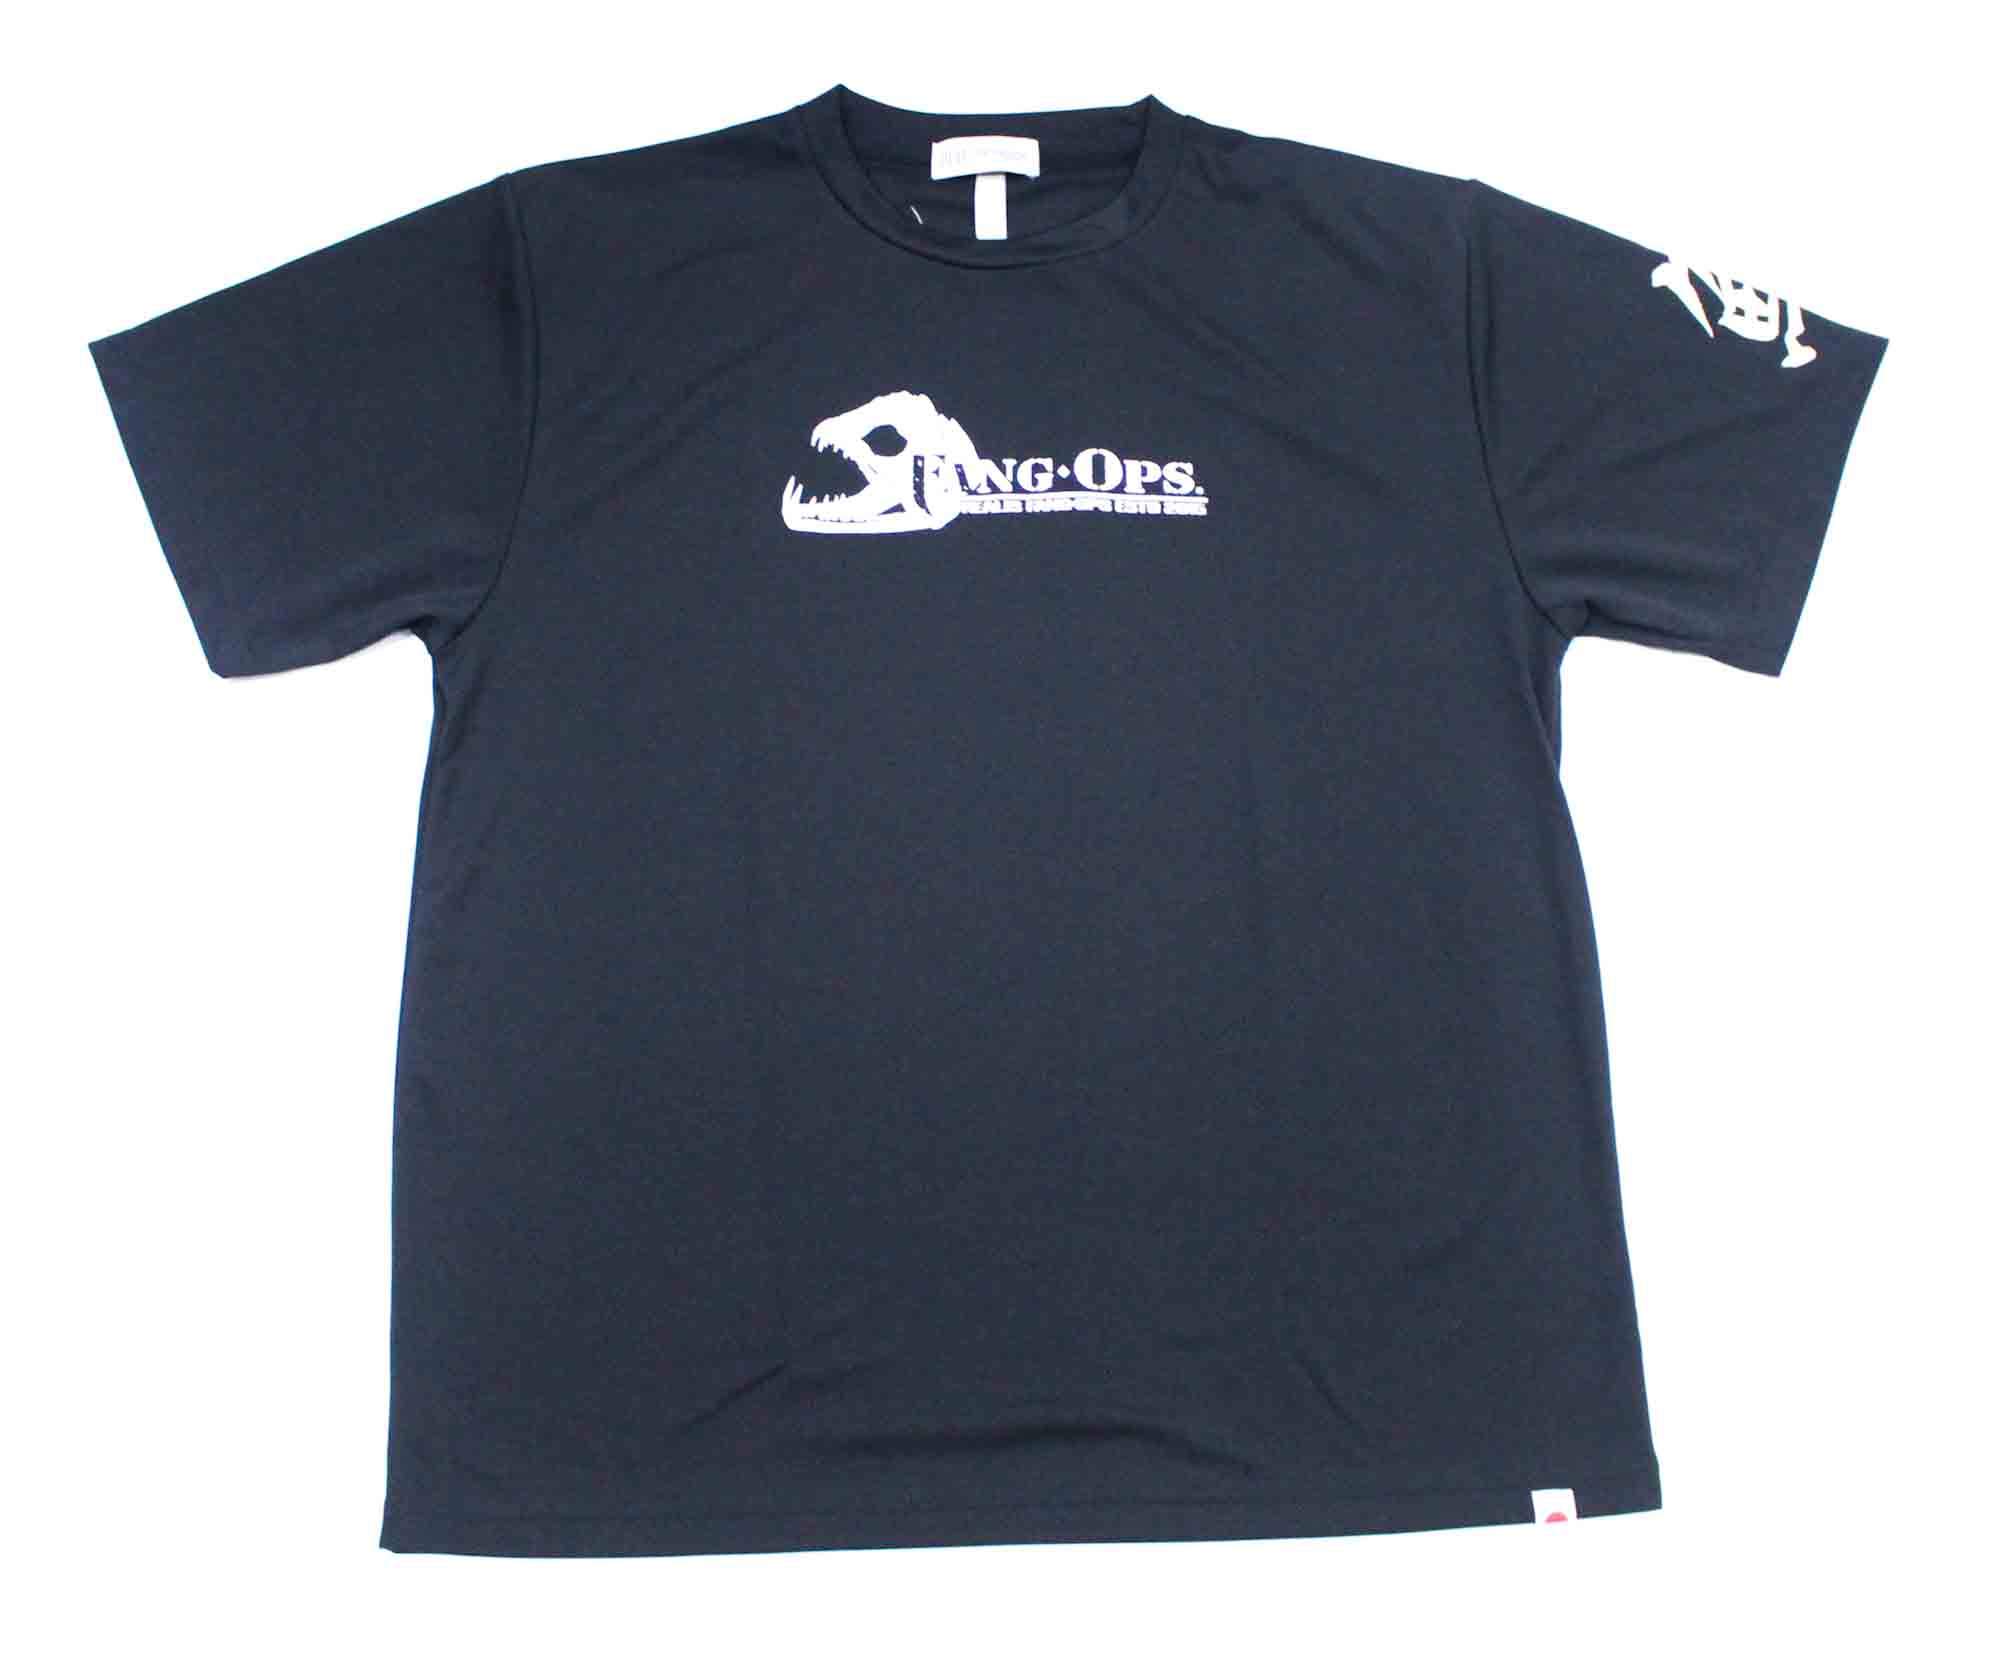 Duo T Shirt Fang Ops Beast Short Sleeve Dry Fit Black Size XXL (1744)